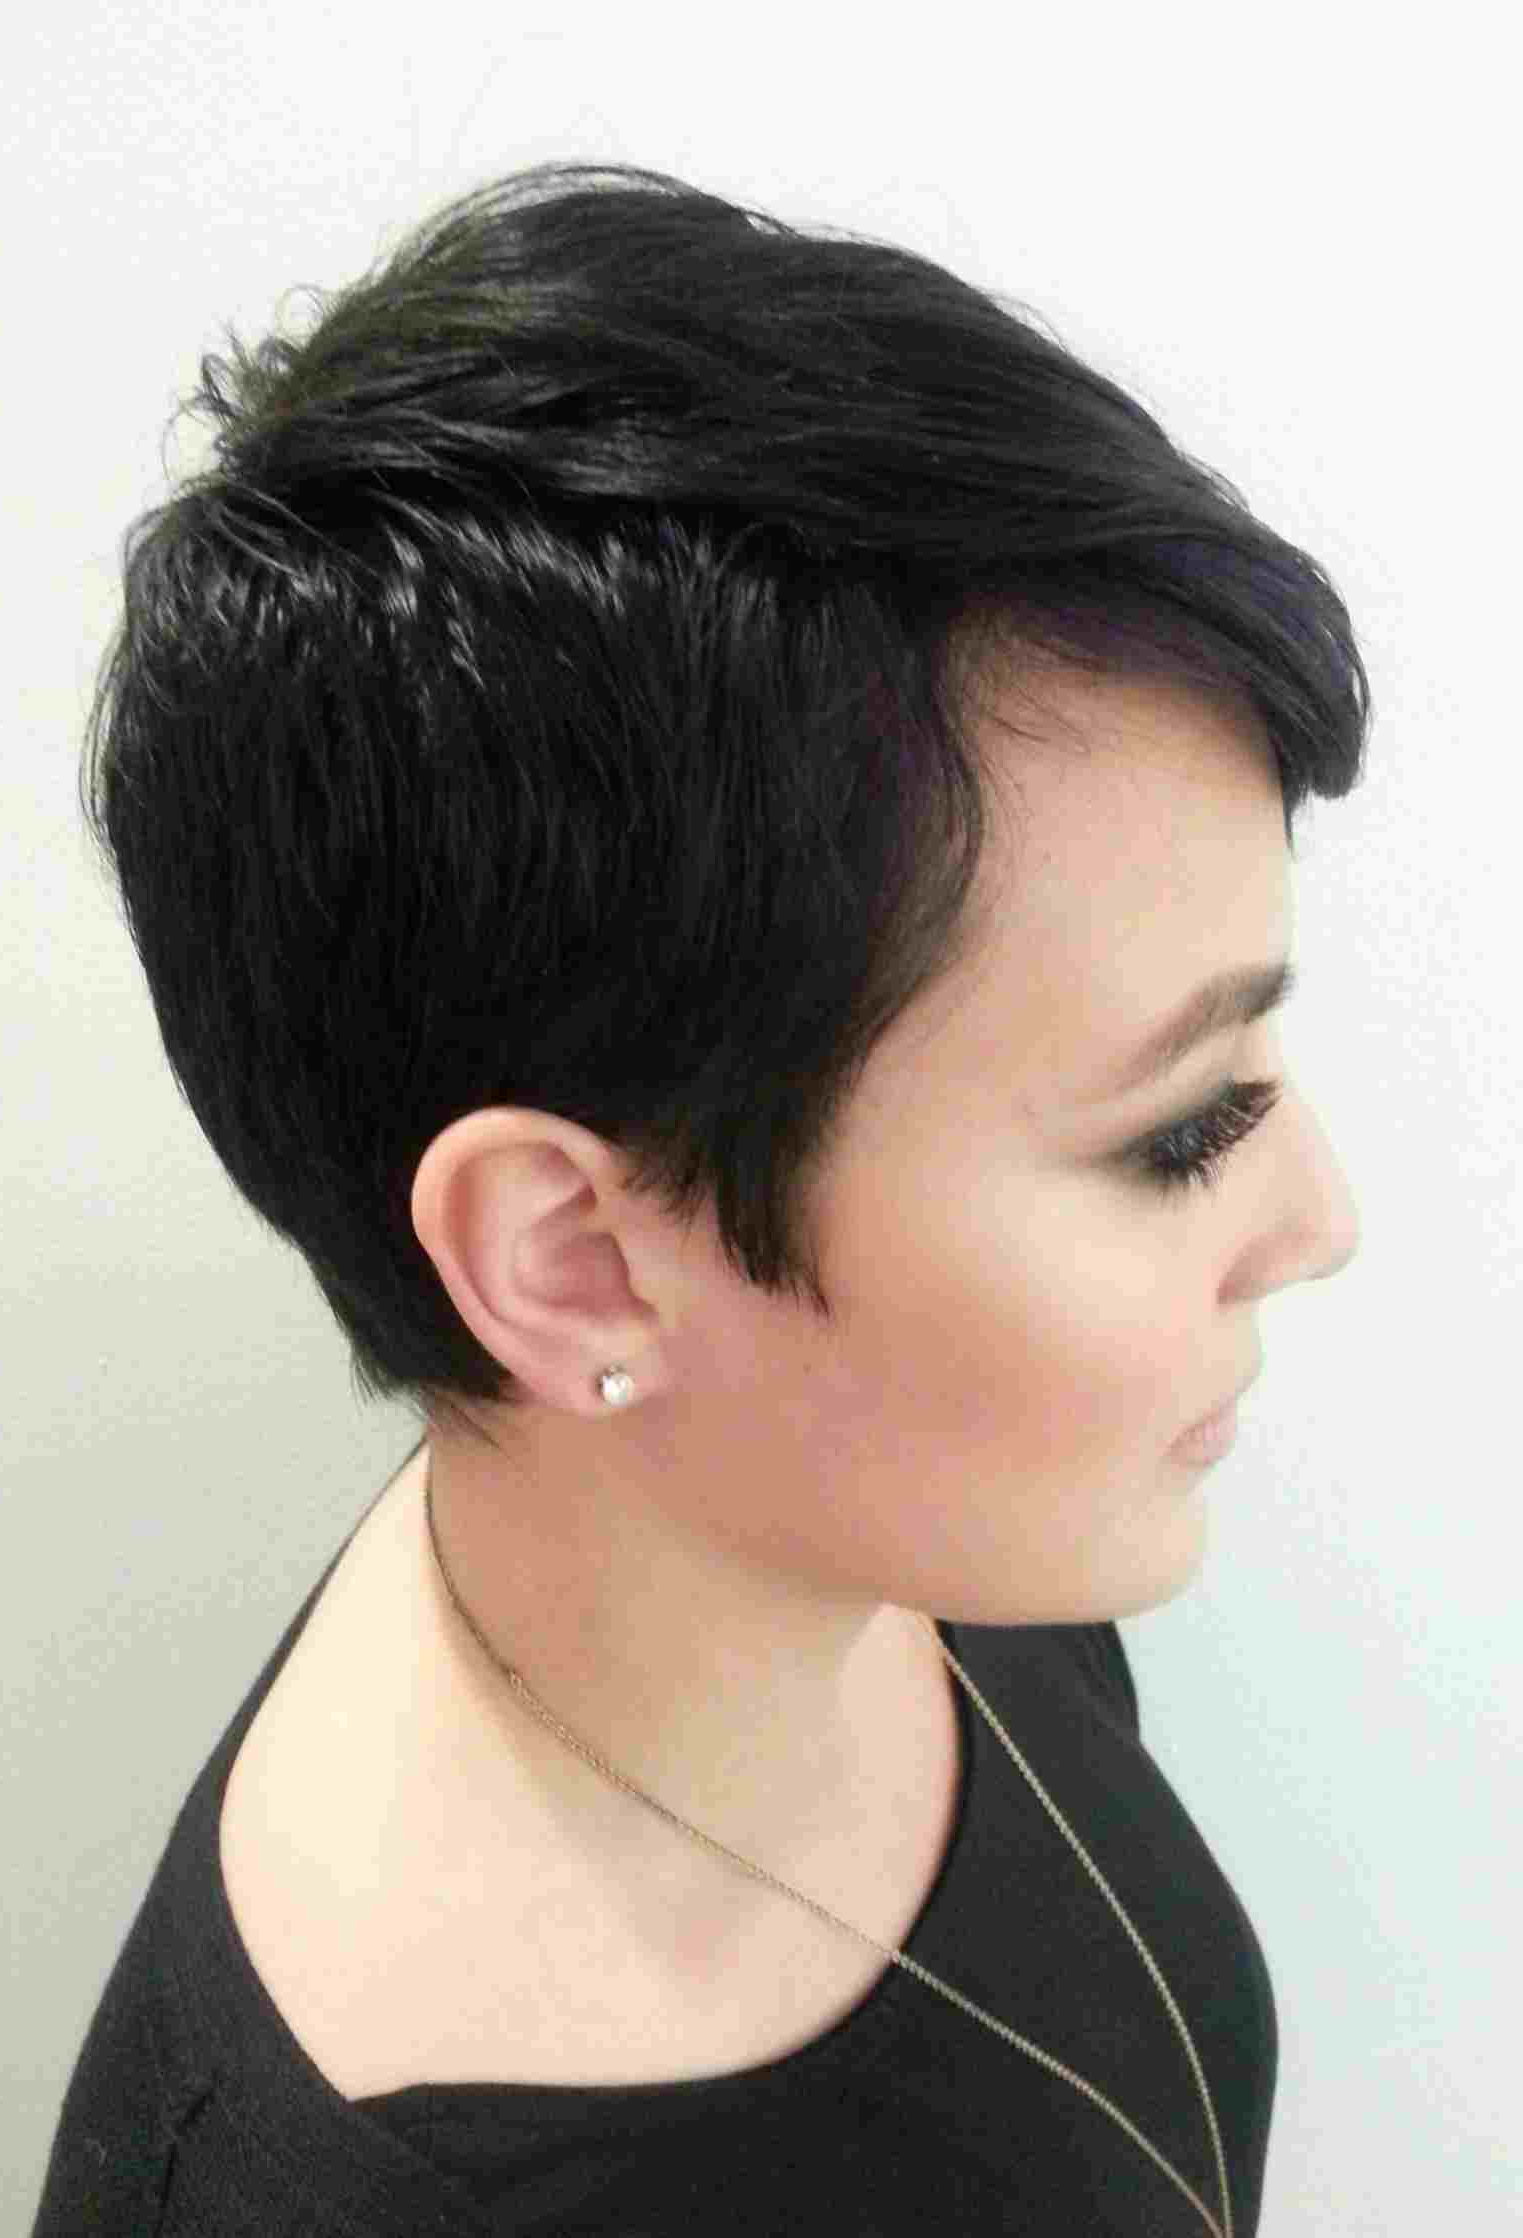 Rhpinterestcom New Short Hairstyles For Thick Wavy Coarse Hair Pertaining To Low Maintenance Short Hairstyles (View 19 of 25)